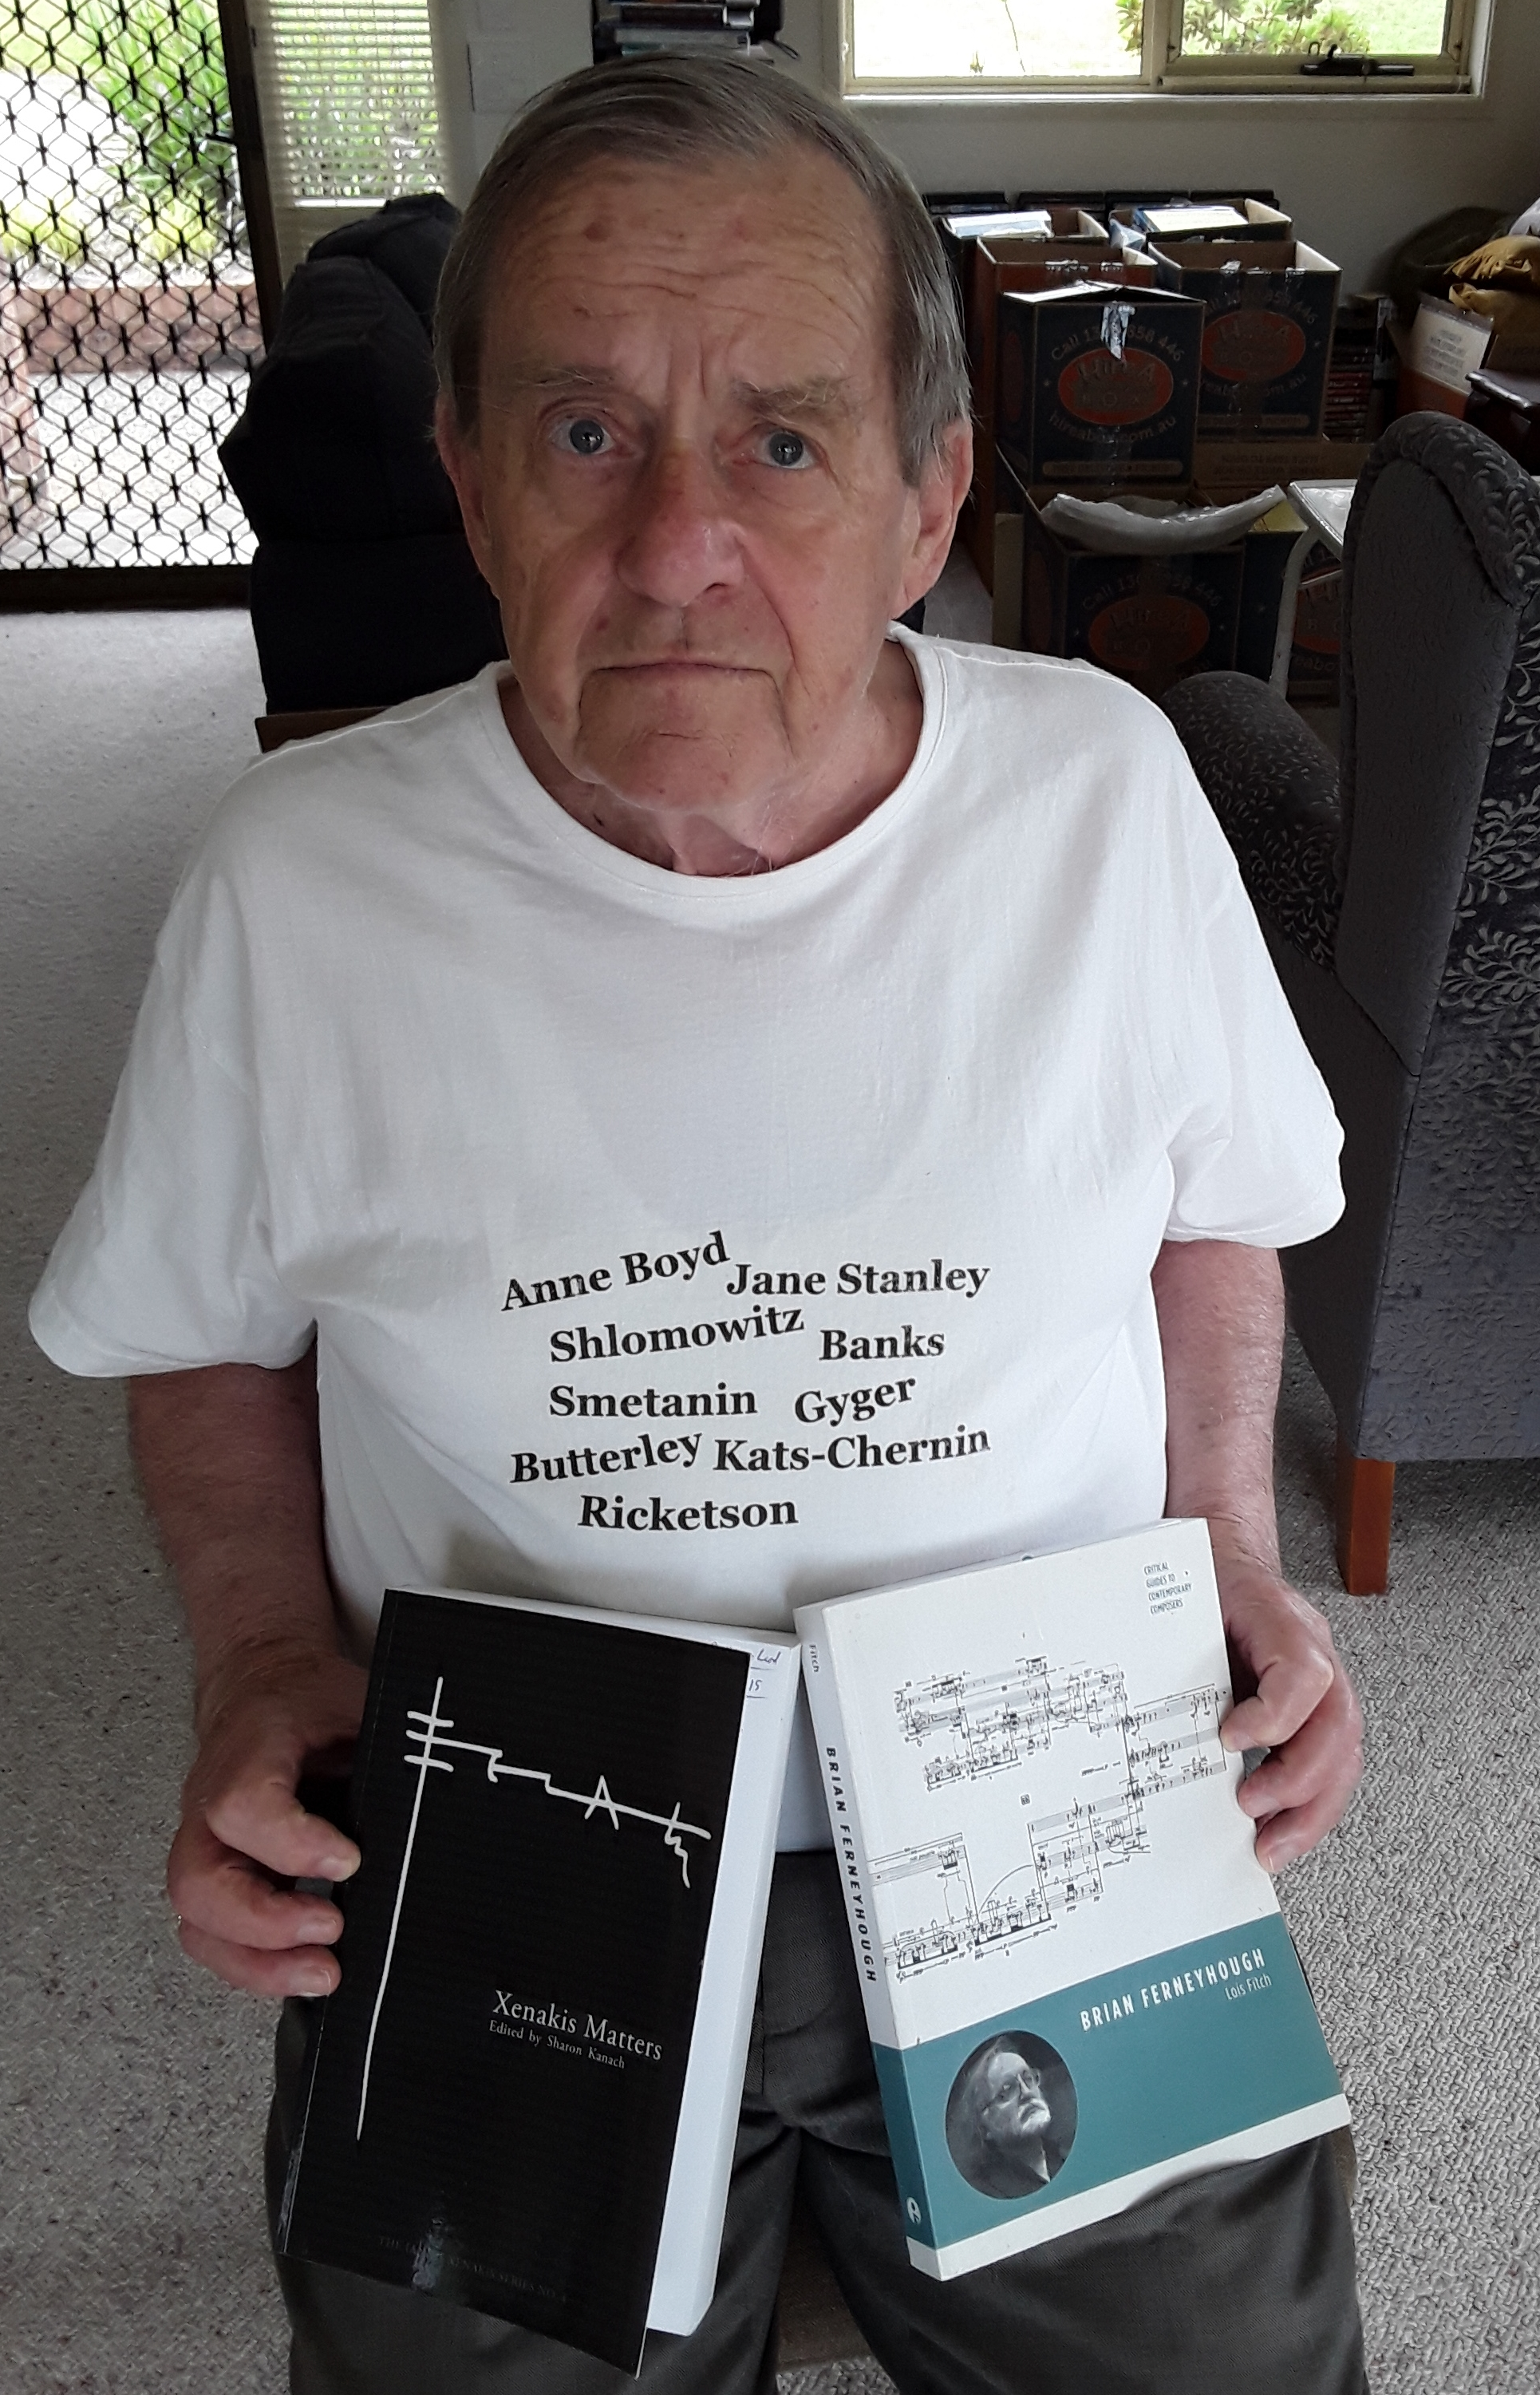 Don Macleod wears his love of new music proudly! He's a font of knowledge about the contemporary music landscape, a regular attendee of gigs, and a patron to boot. We need more like Don! -